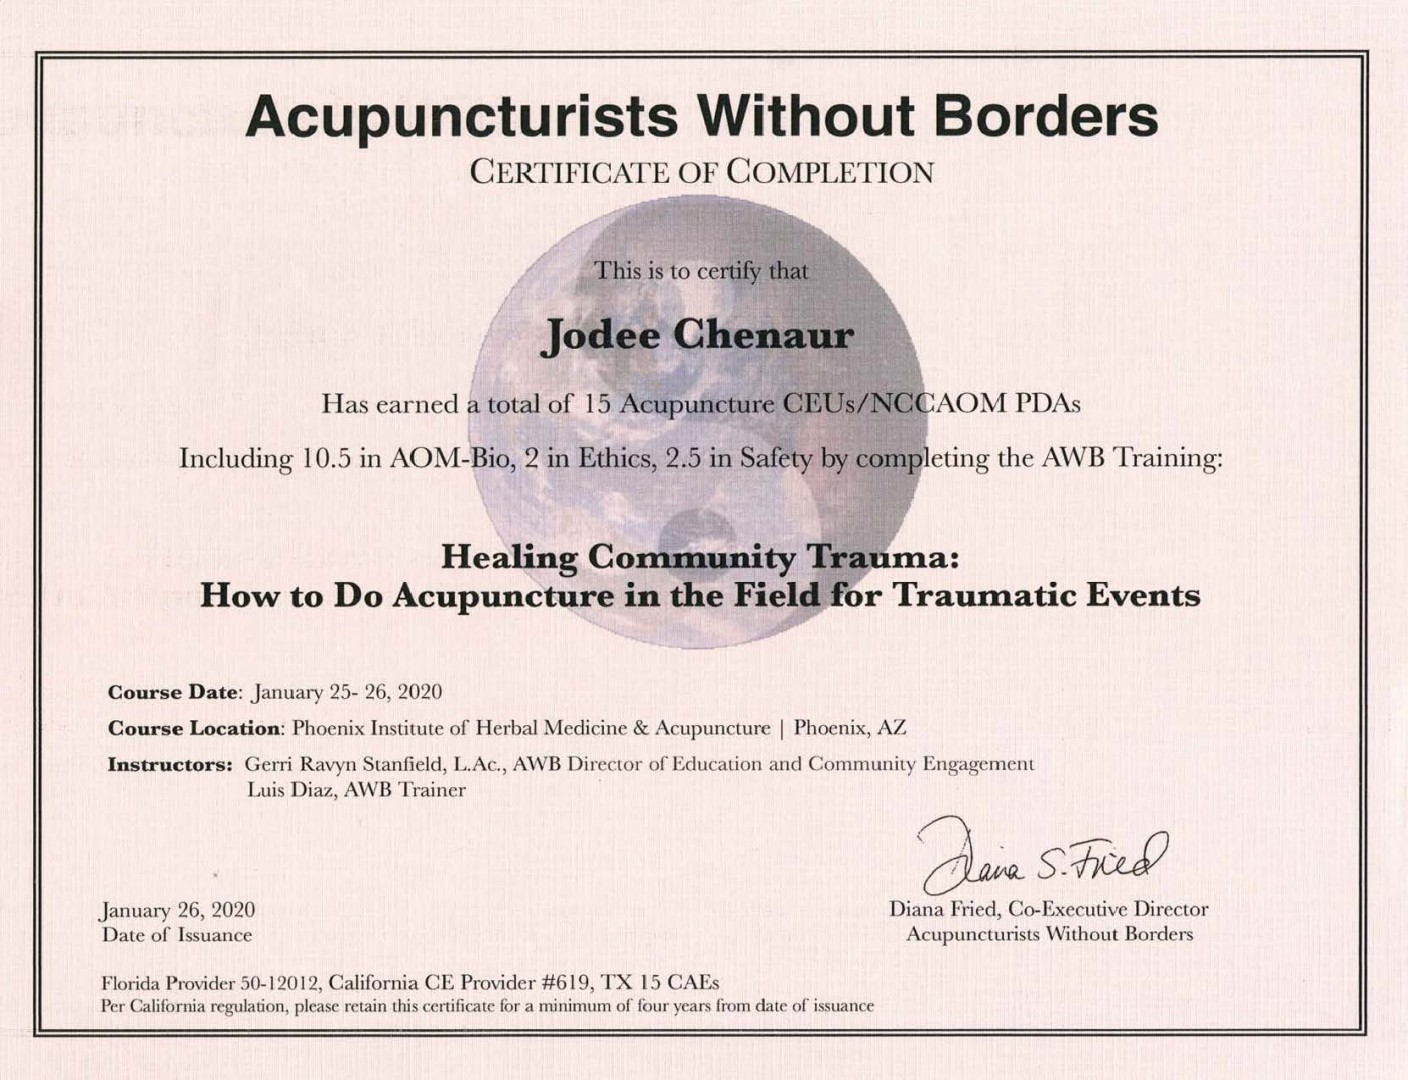 ACUPUNCTURISTS WITHOUT BORDERS, Four Seasons Acupuncture in Sun City, AZ